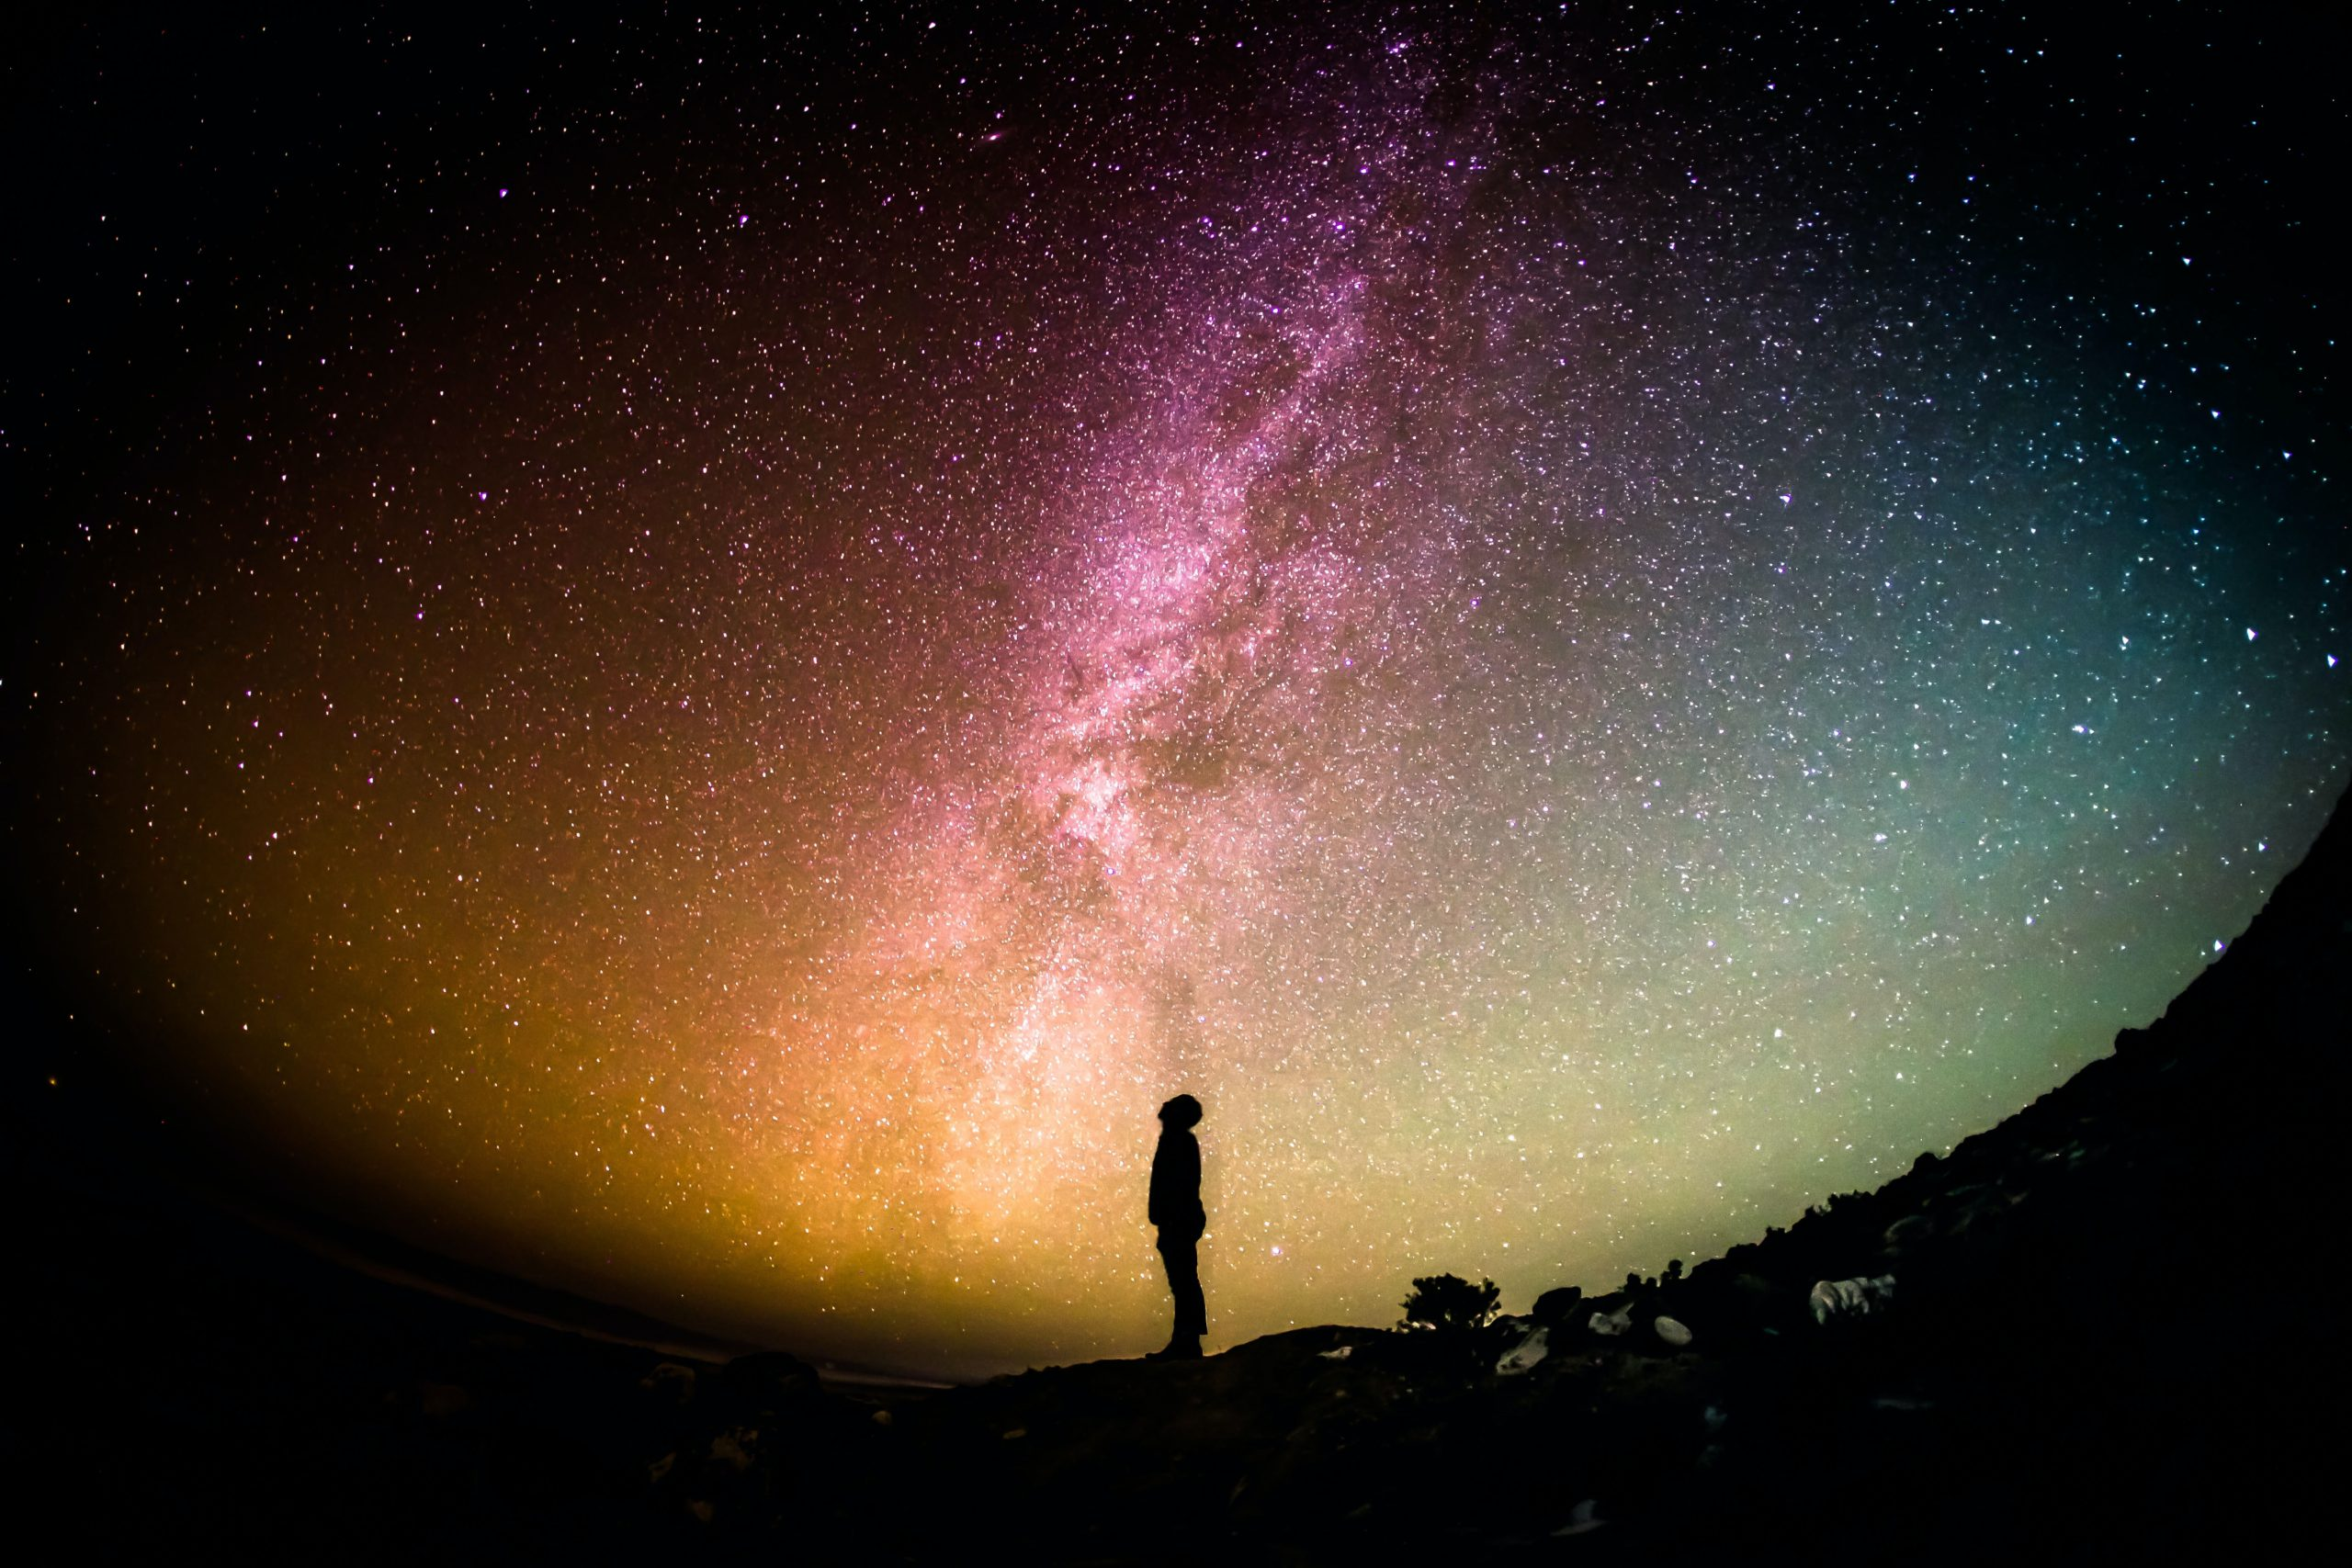 Person standing alone, staring up at a multi-colored galaxy of stars.